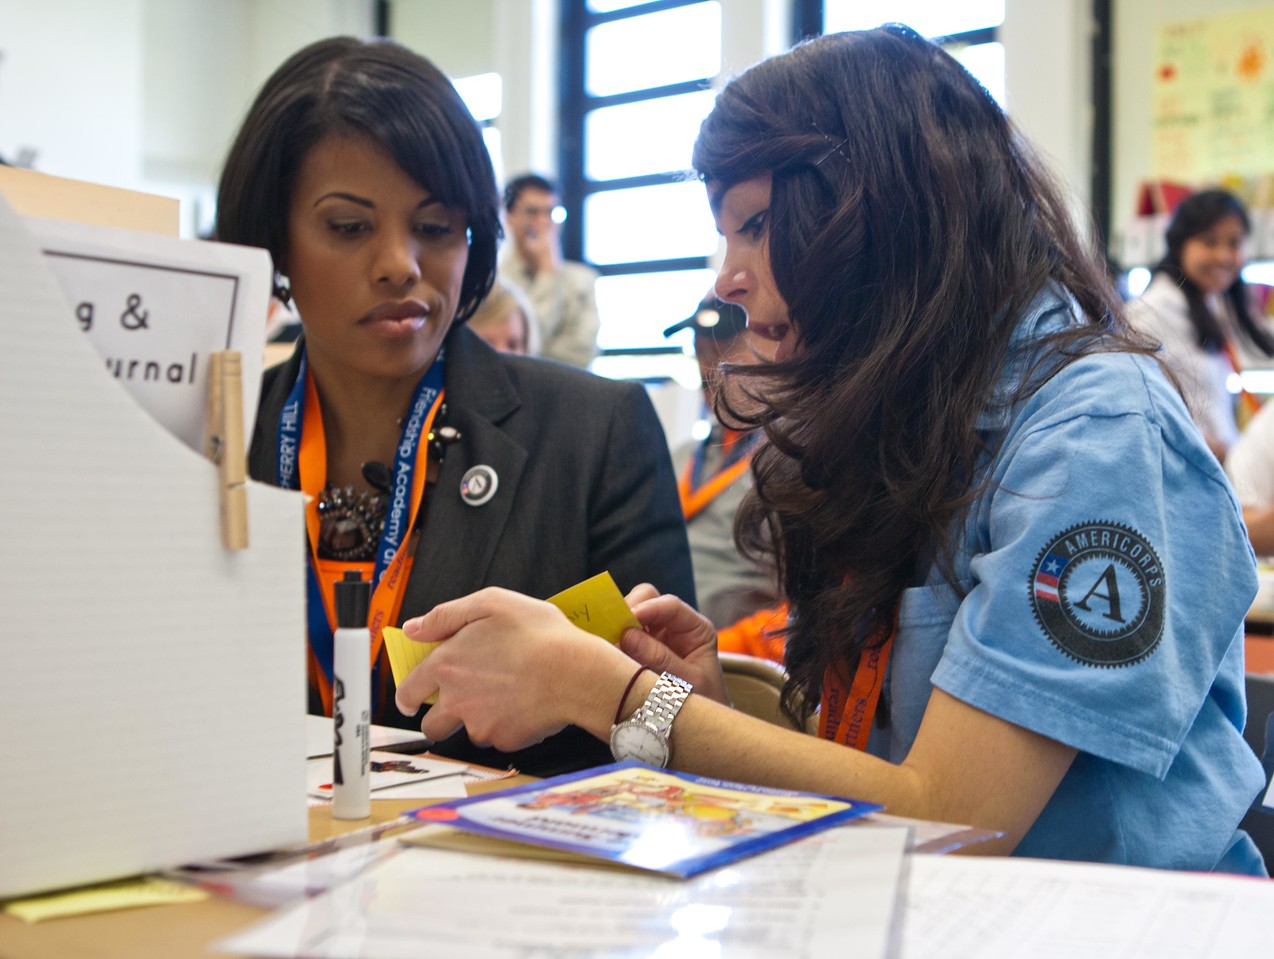 Baltimore Mayor Stephanie Rawlings-Blake serves alongside an AmeriCorps member at the Service Bowl in Baltimore, MD. Corporation for National and Community Service Photo.